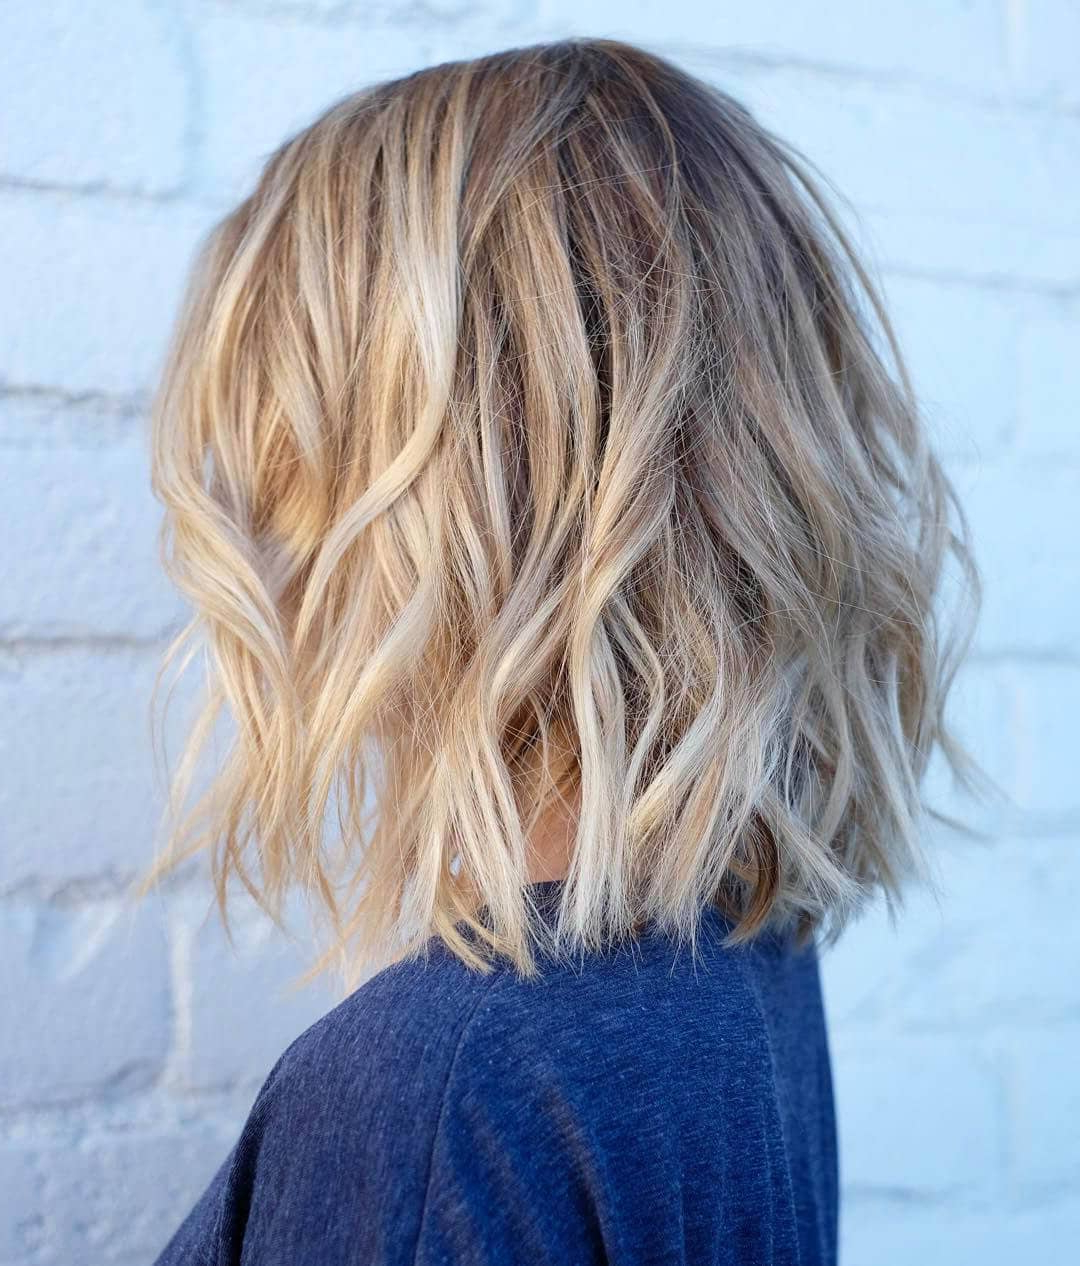 50 Fresh Short Blonde Hair Ideas To Update Your Style In 2018 Within Short Layered Blonde Hairstyles (View 7 of 20)